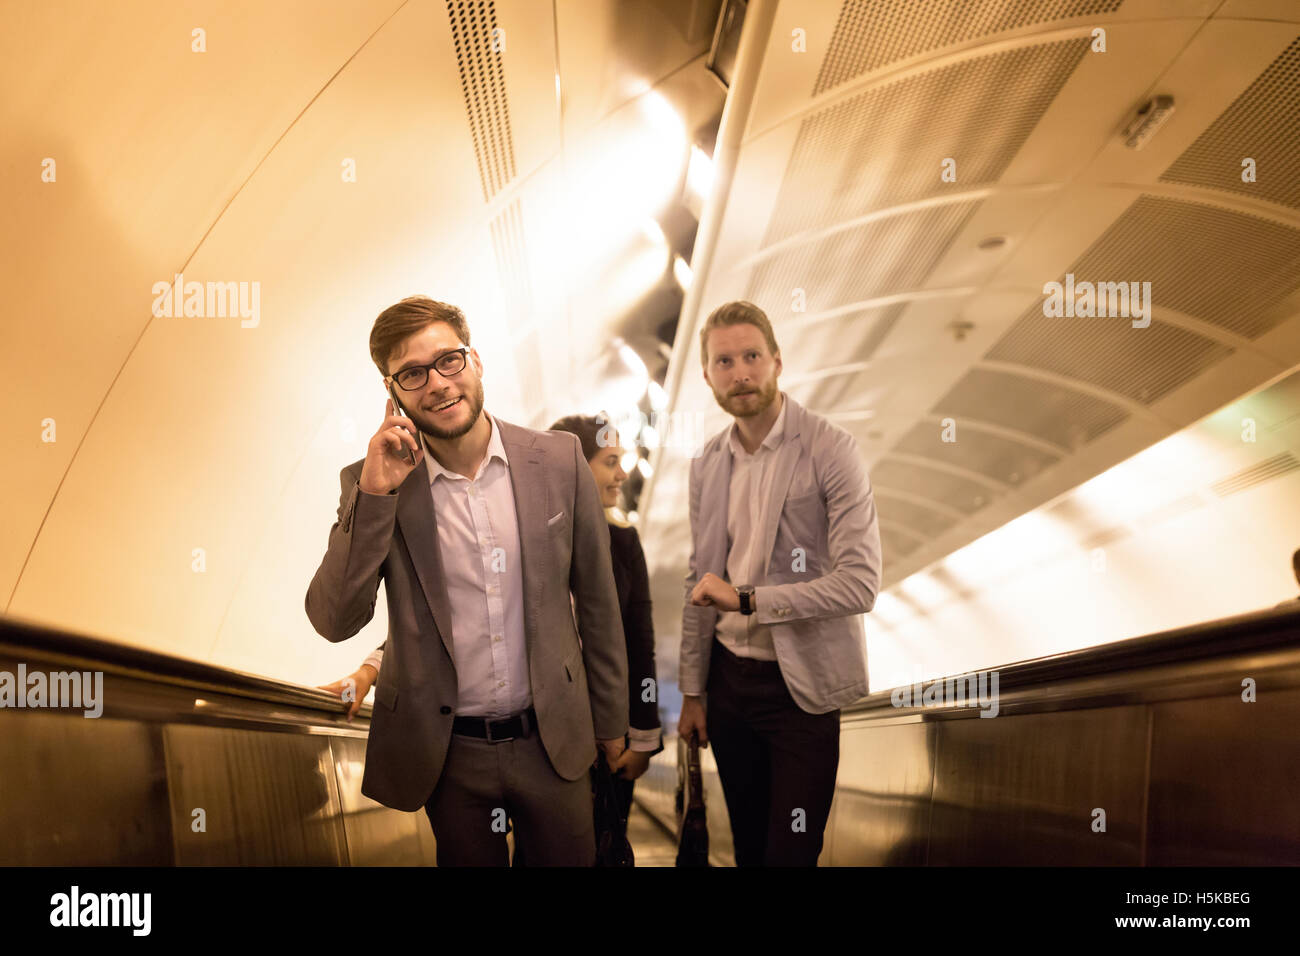 Business people using subway to get to meeting - Stock Image